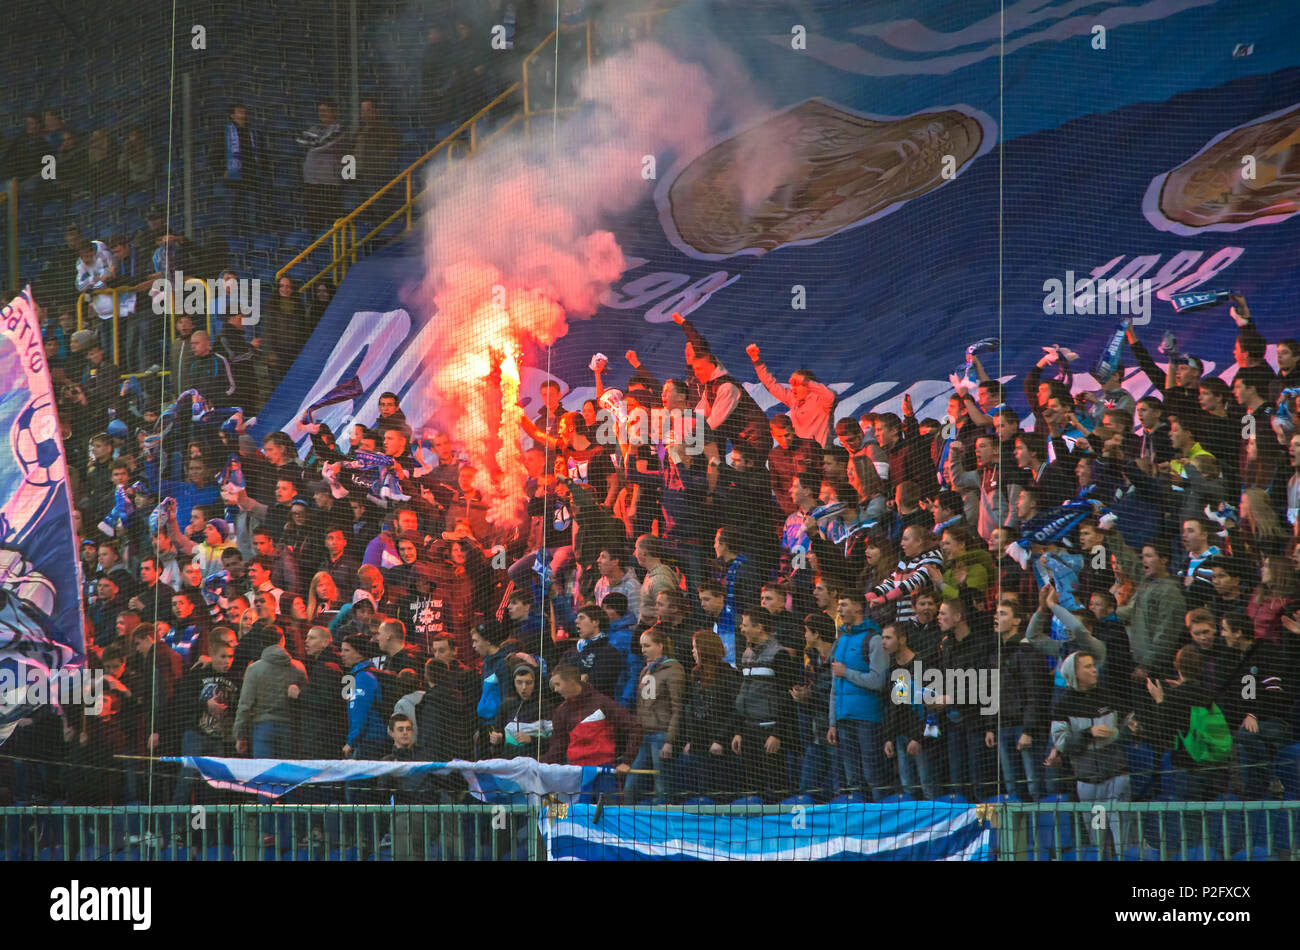 Dnipro, Ukraine - October 12, 2013: Celebrating anniversary of victories of FC Dnipro in USSR Championship in 1983 and 1988. Football hooligans burn f - Stock Image